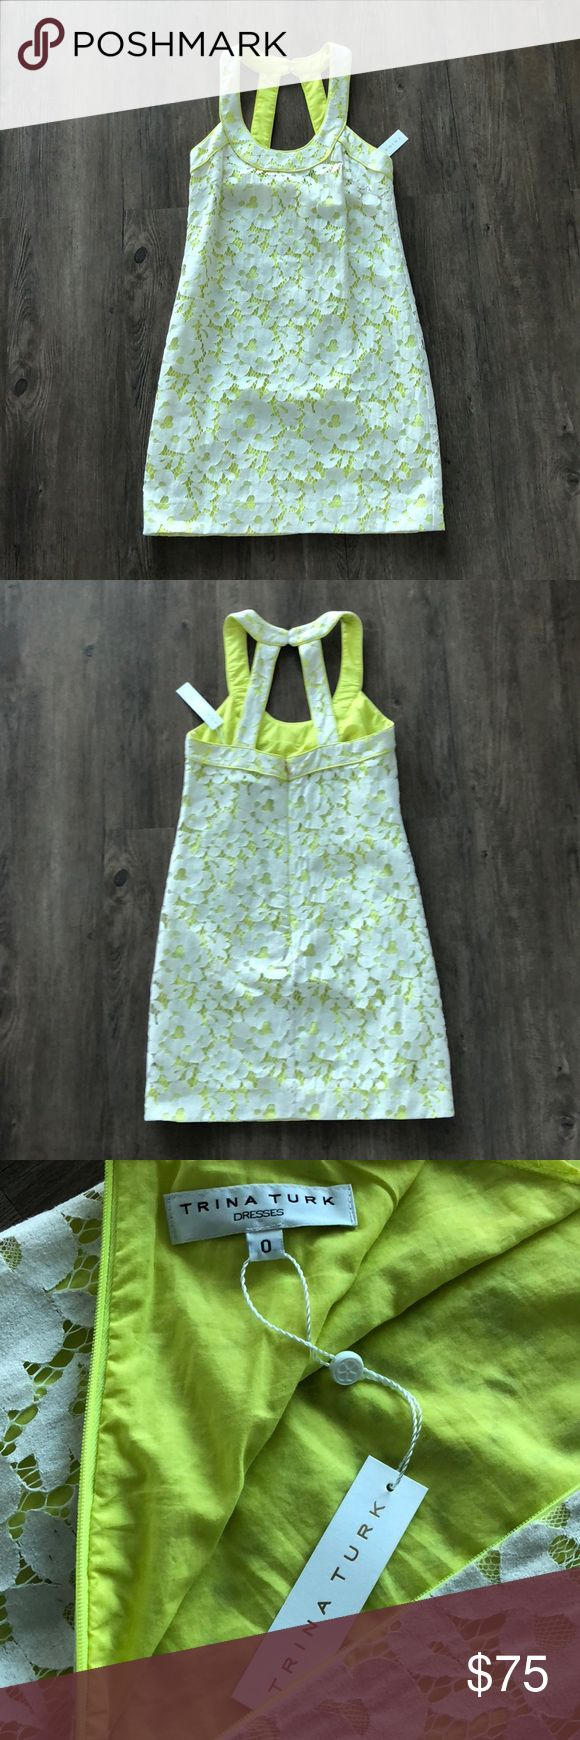 NWT Trina Turk Dress Size 0 NWT Trina Turk Neon Lace Dress Size 0. Trying to clean out my closet, no trade requests please! Trina Turk Dresses